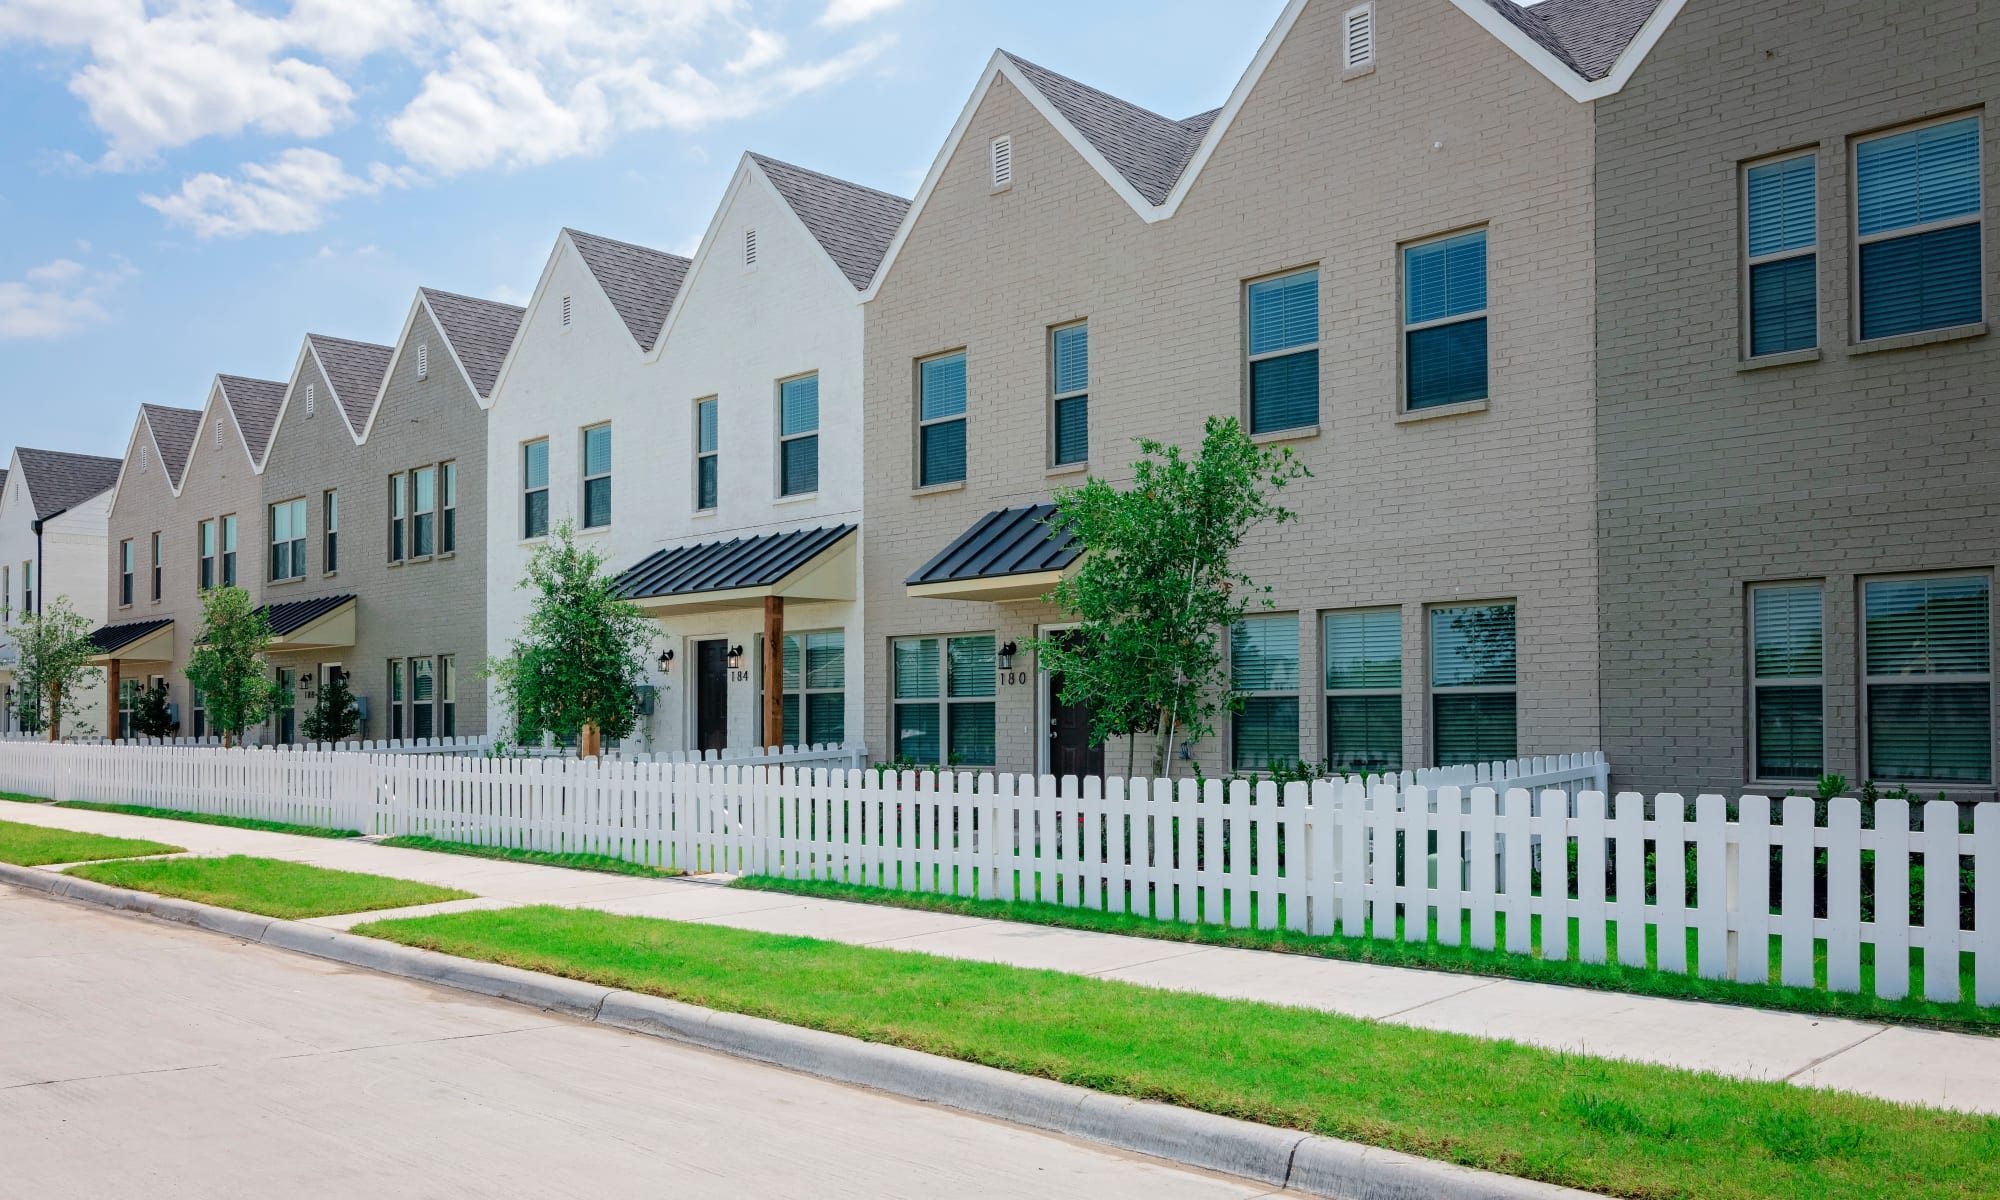 Townhomes at The Townhomes at BlueBonnet Trails in Waxahachie, Texas